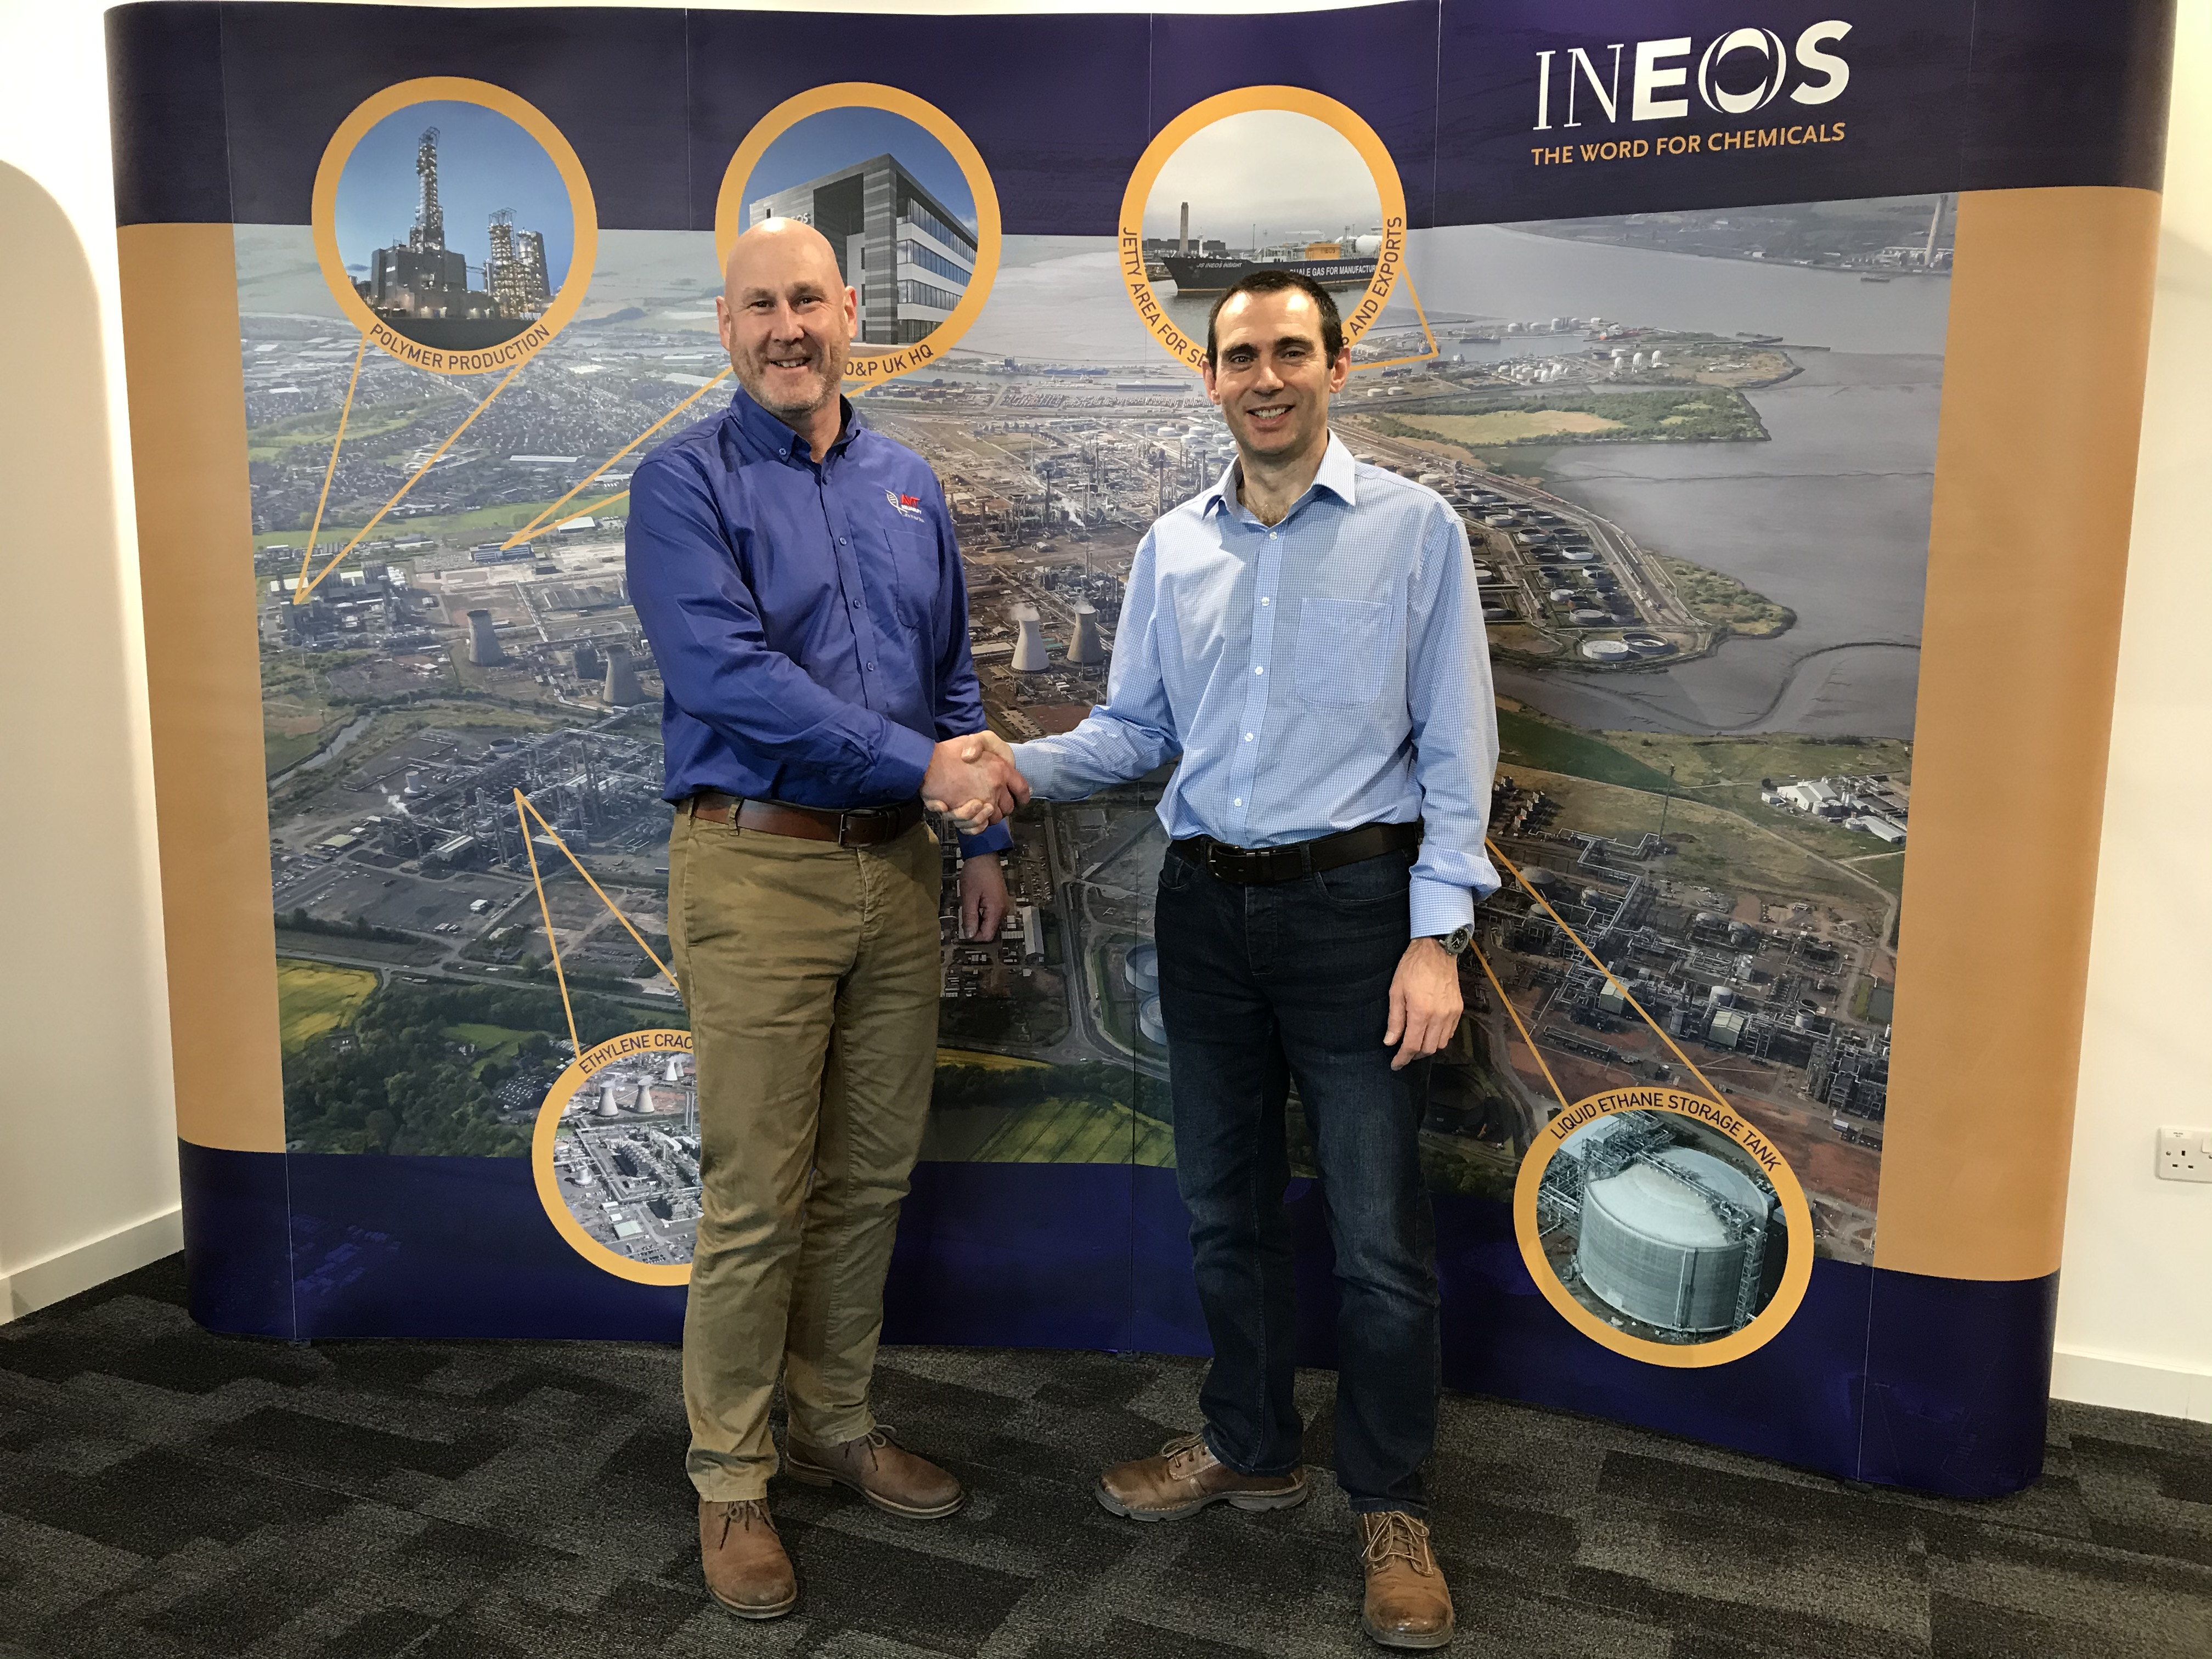 Paul Stamper, Head of Operations at AVT Reliability and John Burles, Machinery Specialist, Machinery Engineering at INEOS Olefins and Polymers, UK. (Image taken pre-social distancing)